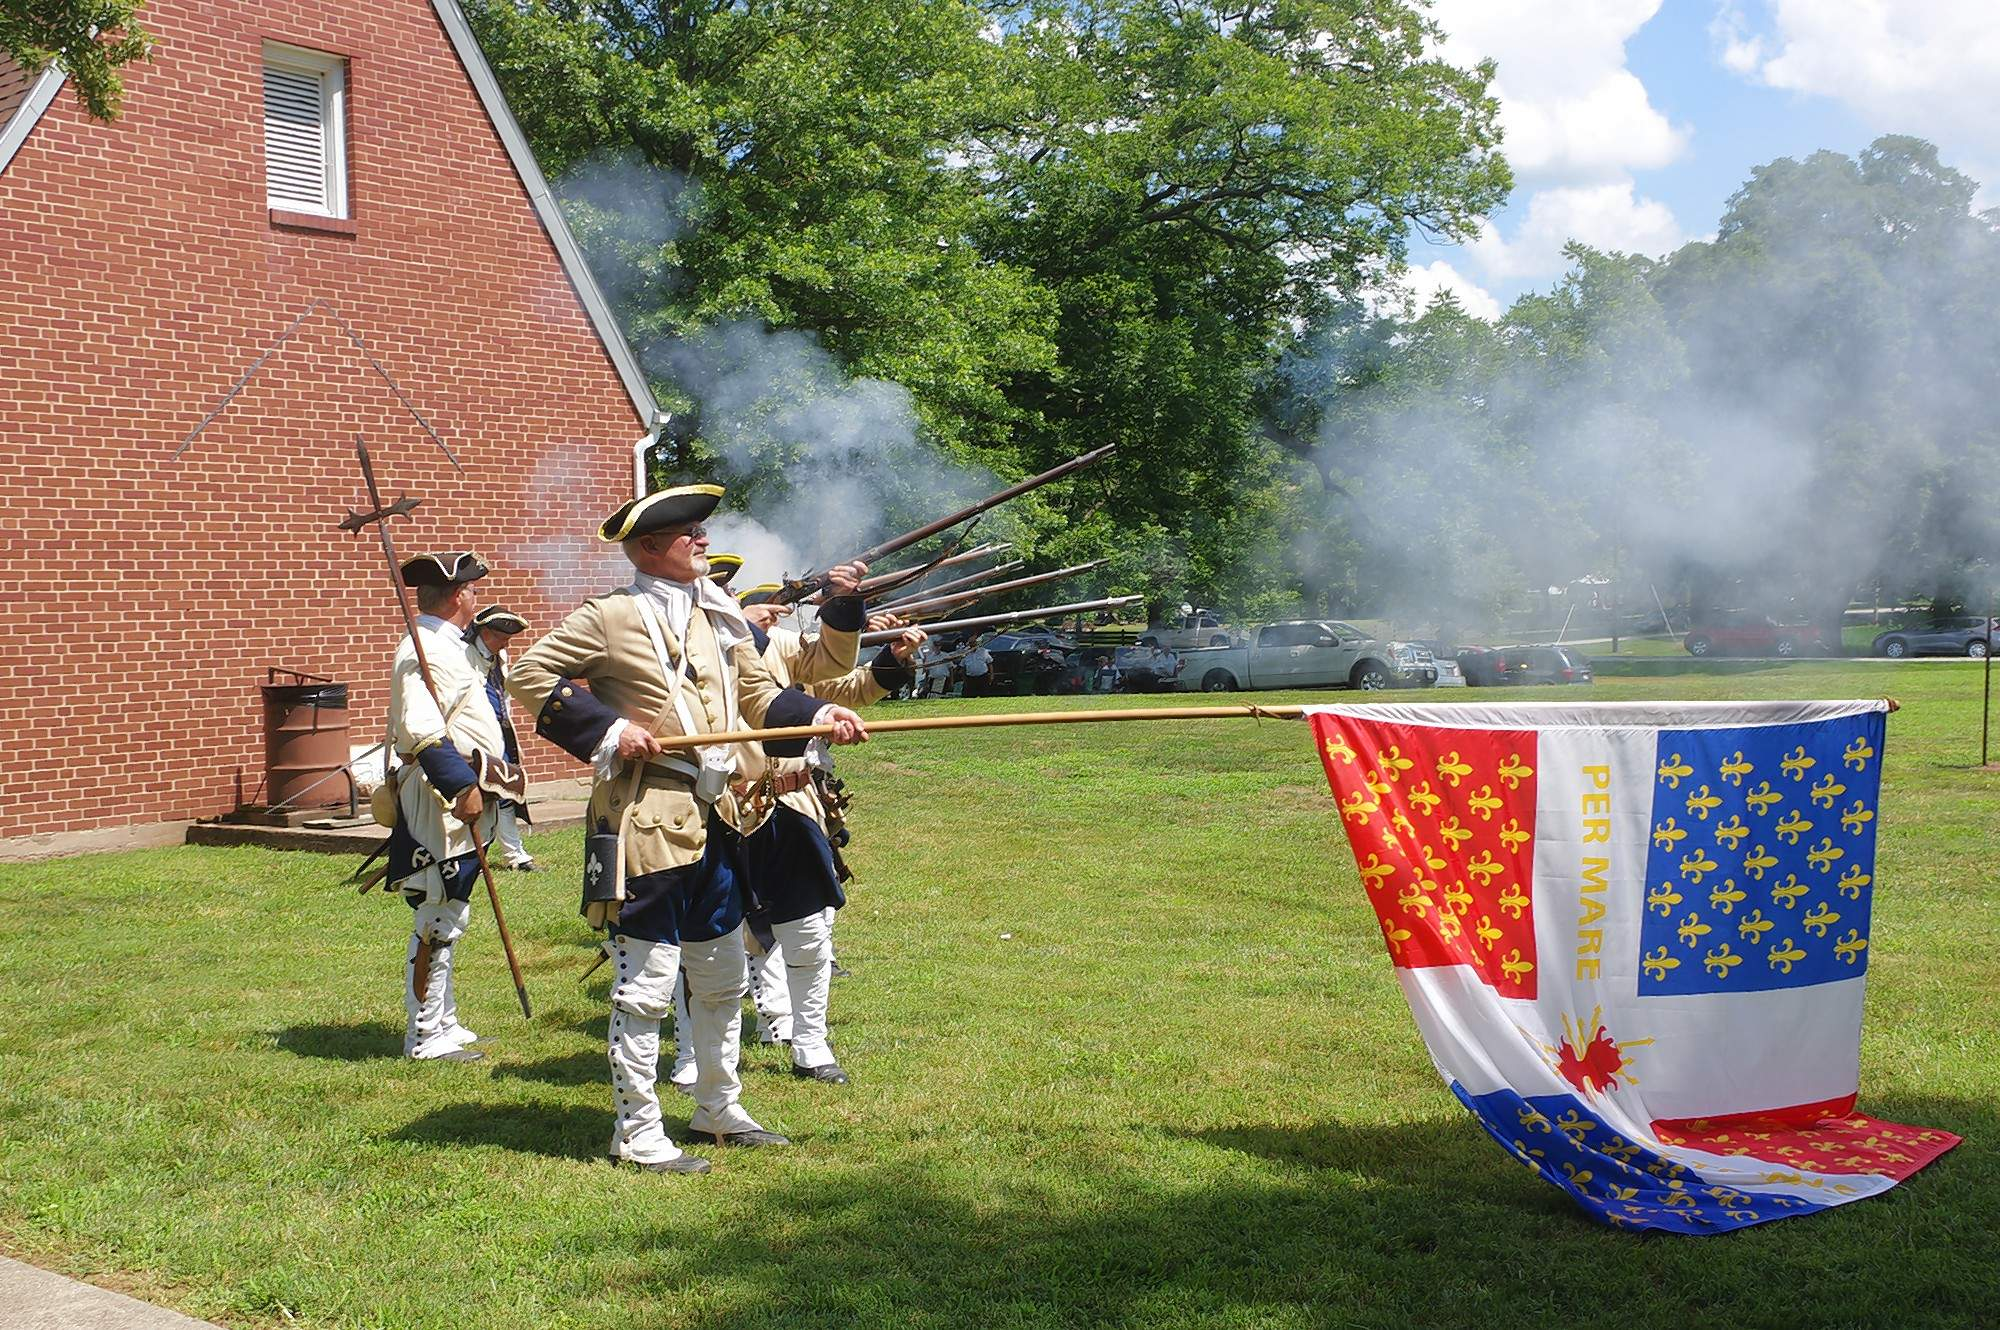 """The French Marines, de Forte de Chartres, led by Commander Don Martin, gave their traditional musket salute to hail the closing of the 2018 """"Let Freedom Ring"""" celebration on Kaskaskia Island July 4th.  Jim Beers Photo"""